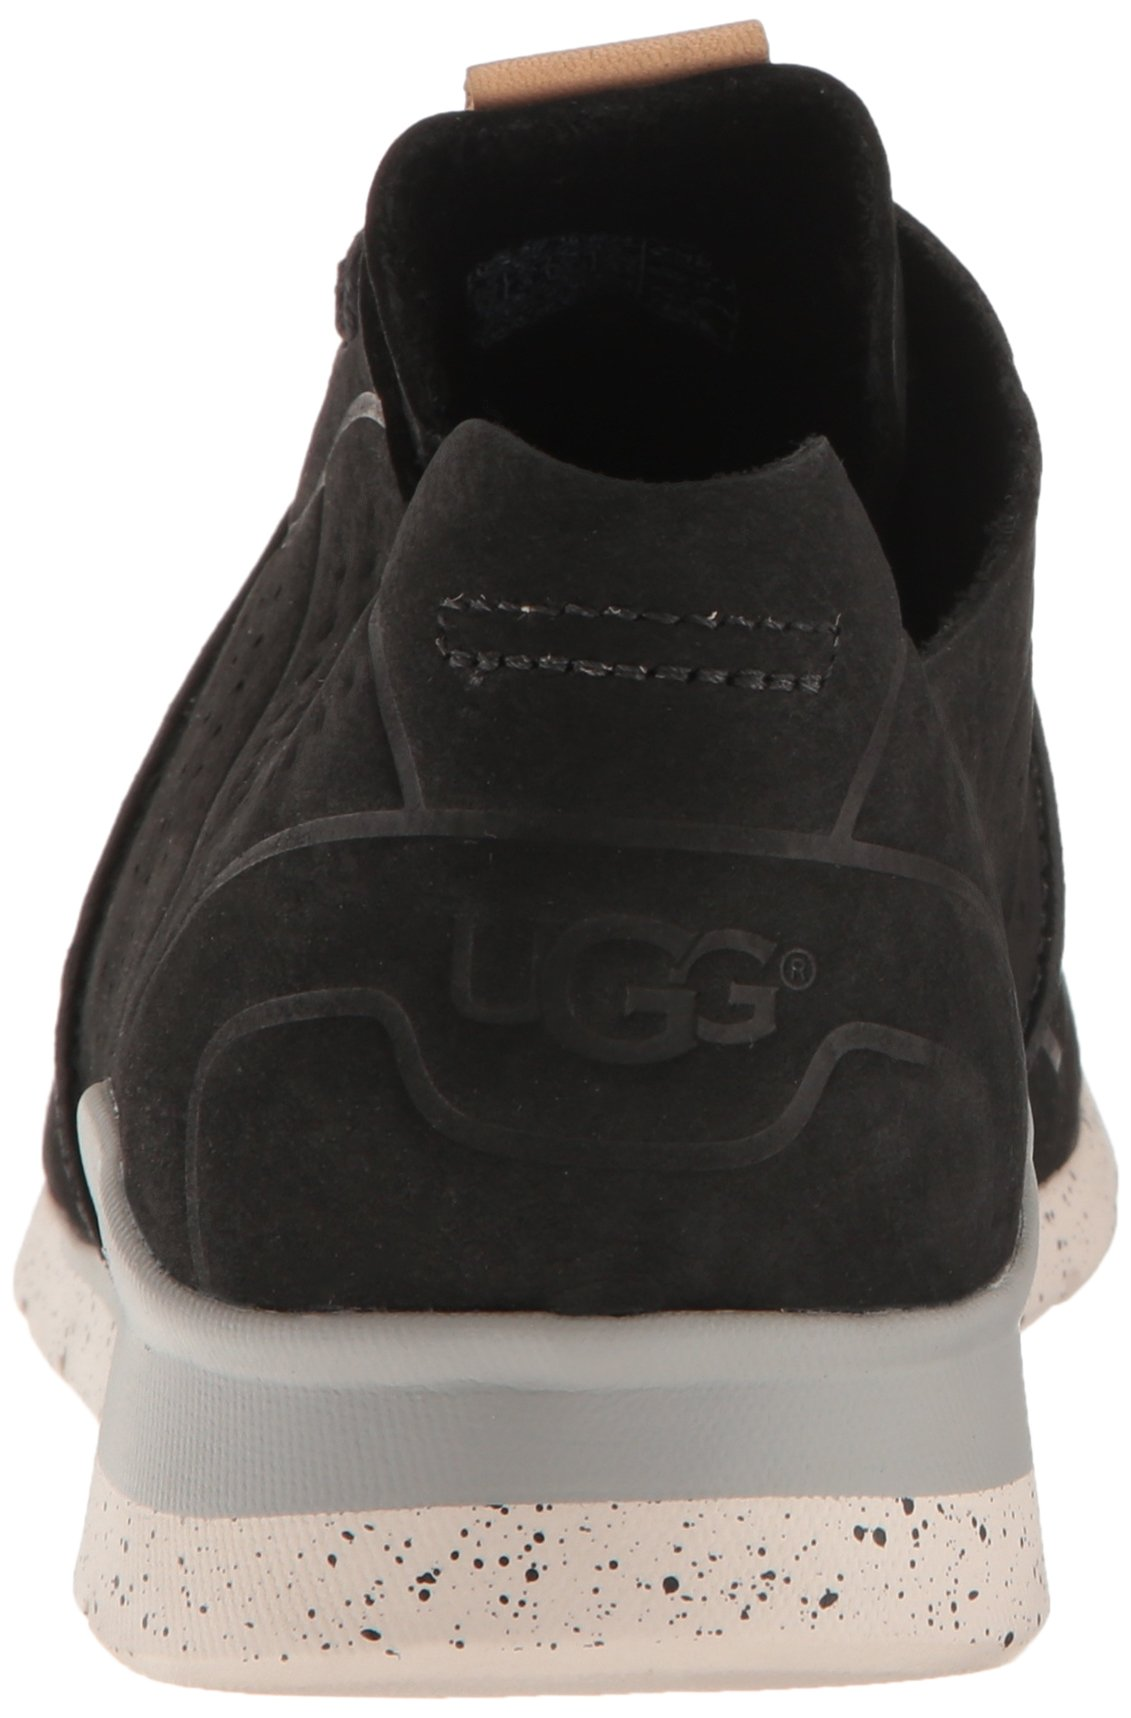 UGG Women's Tye Fashion Sneaker, Black, 8.5 US/8.5 B US by UGG (Image #2)